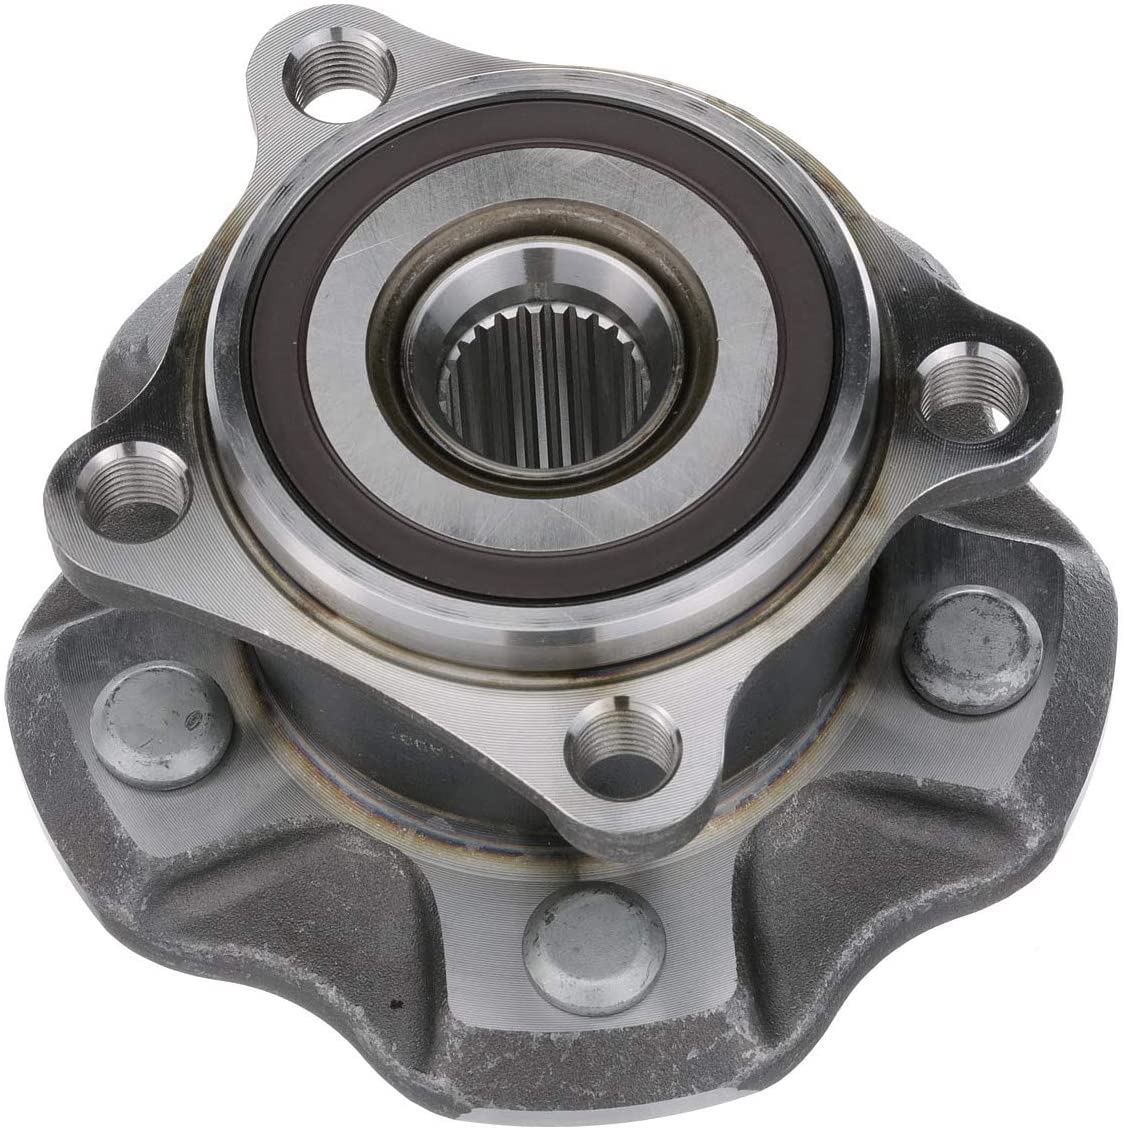 NSK 62BWKH17 Wheel Bearing and Hub Assembly, 1 Pack